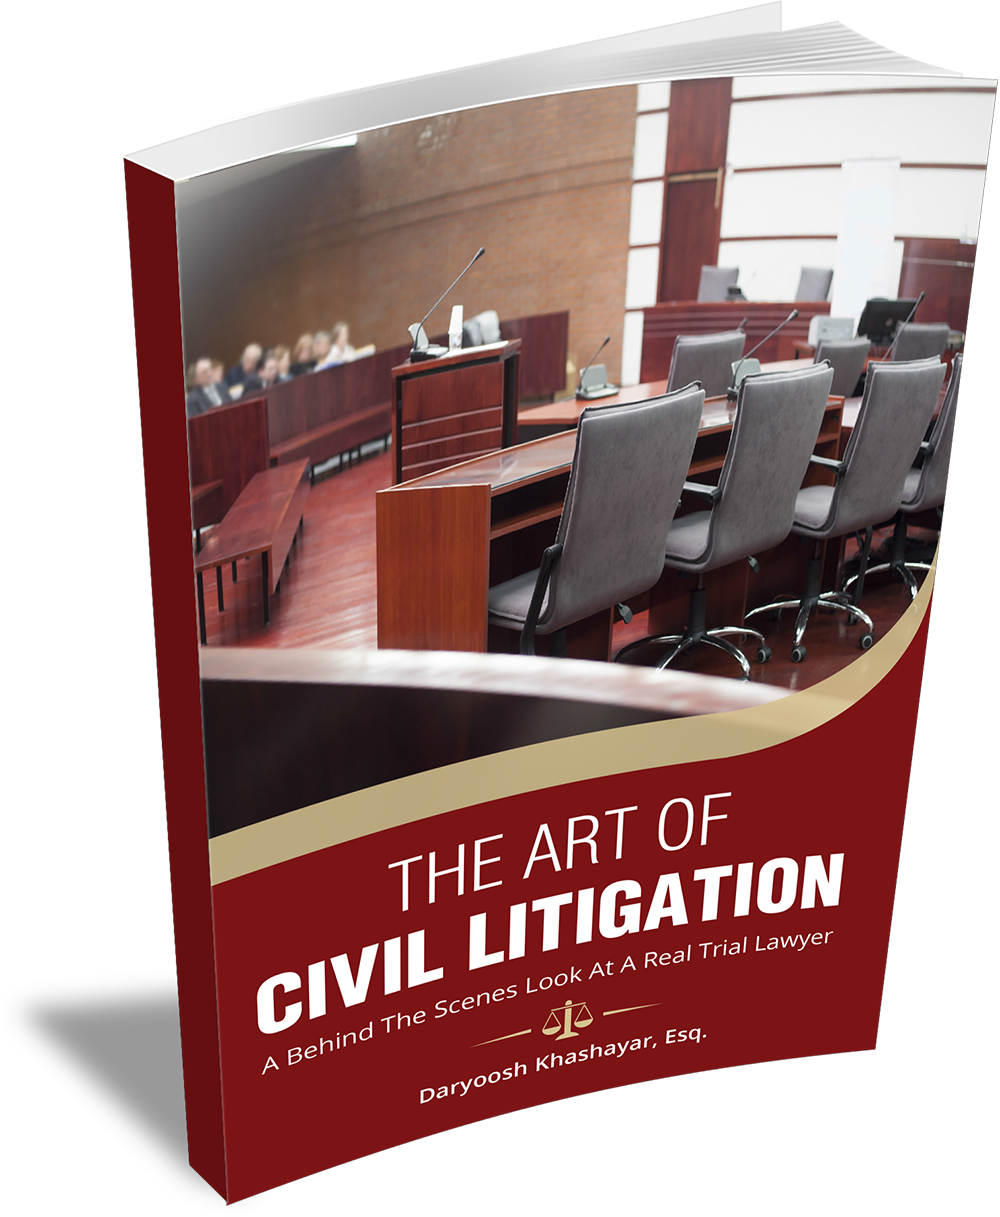 The Art Of Civil Litigation: A Behind The Scenes Look At A Real Trial Lawyer